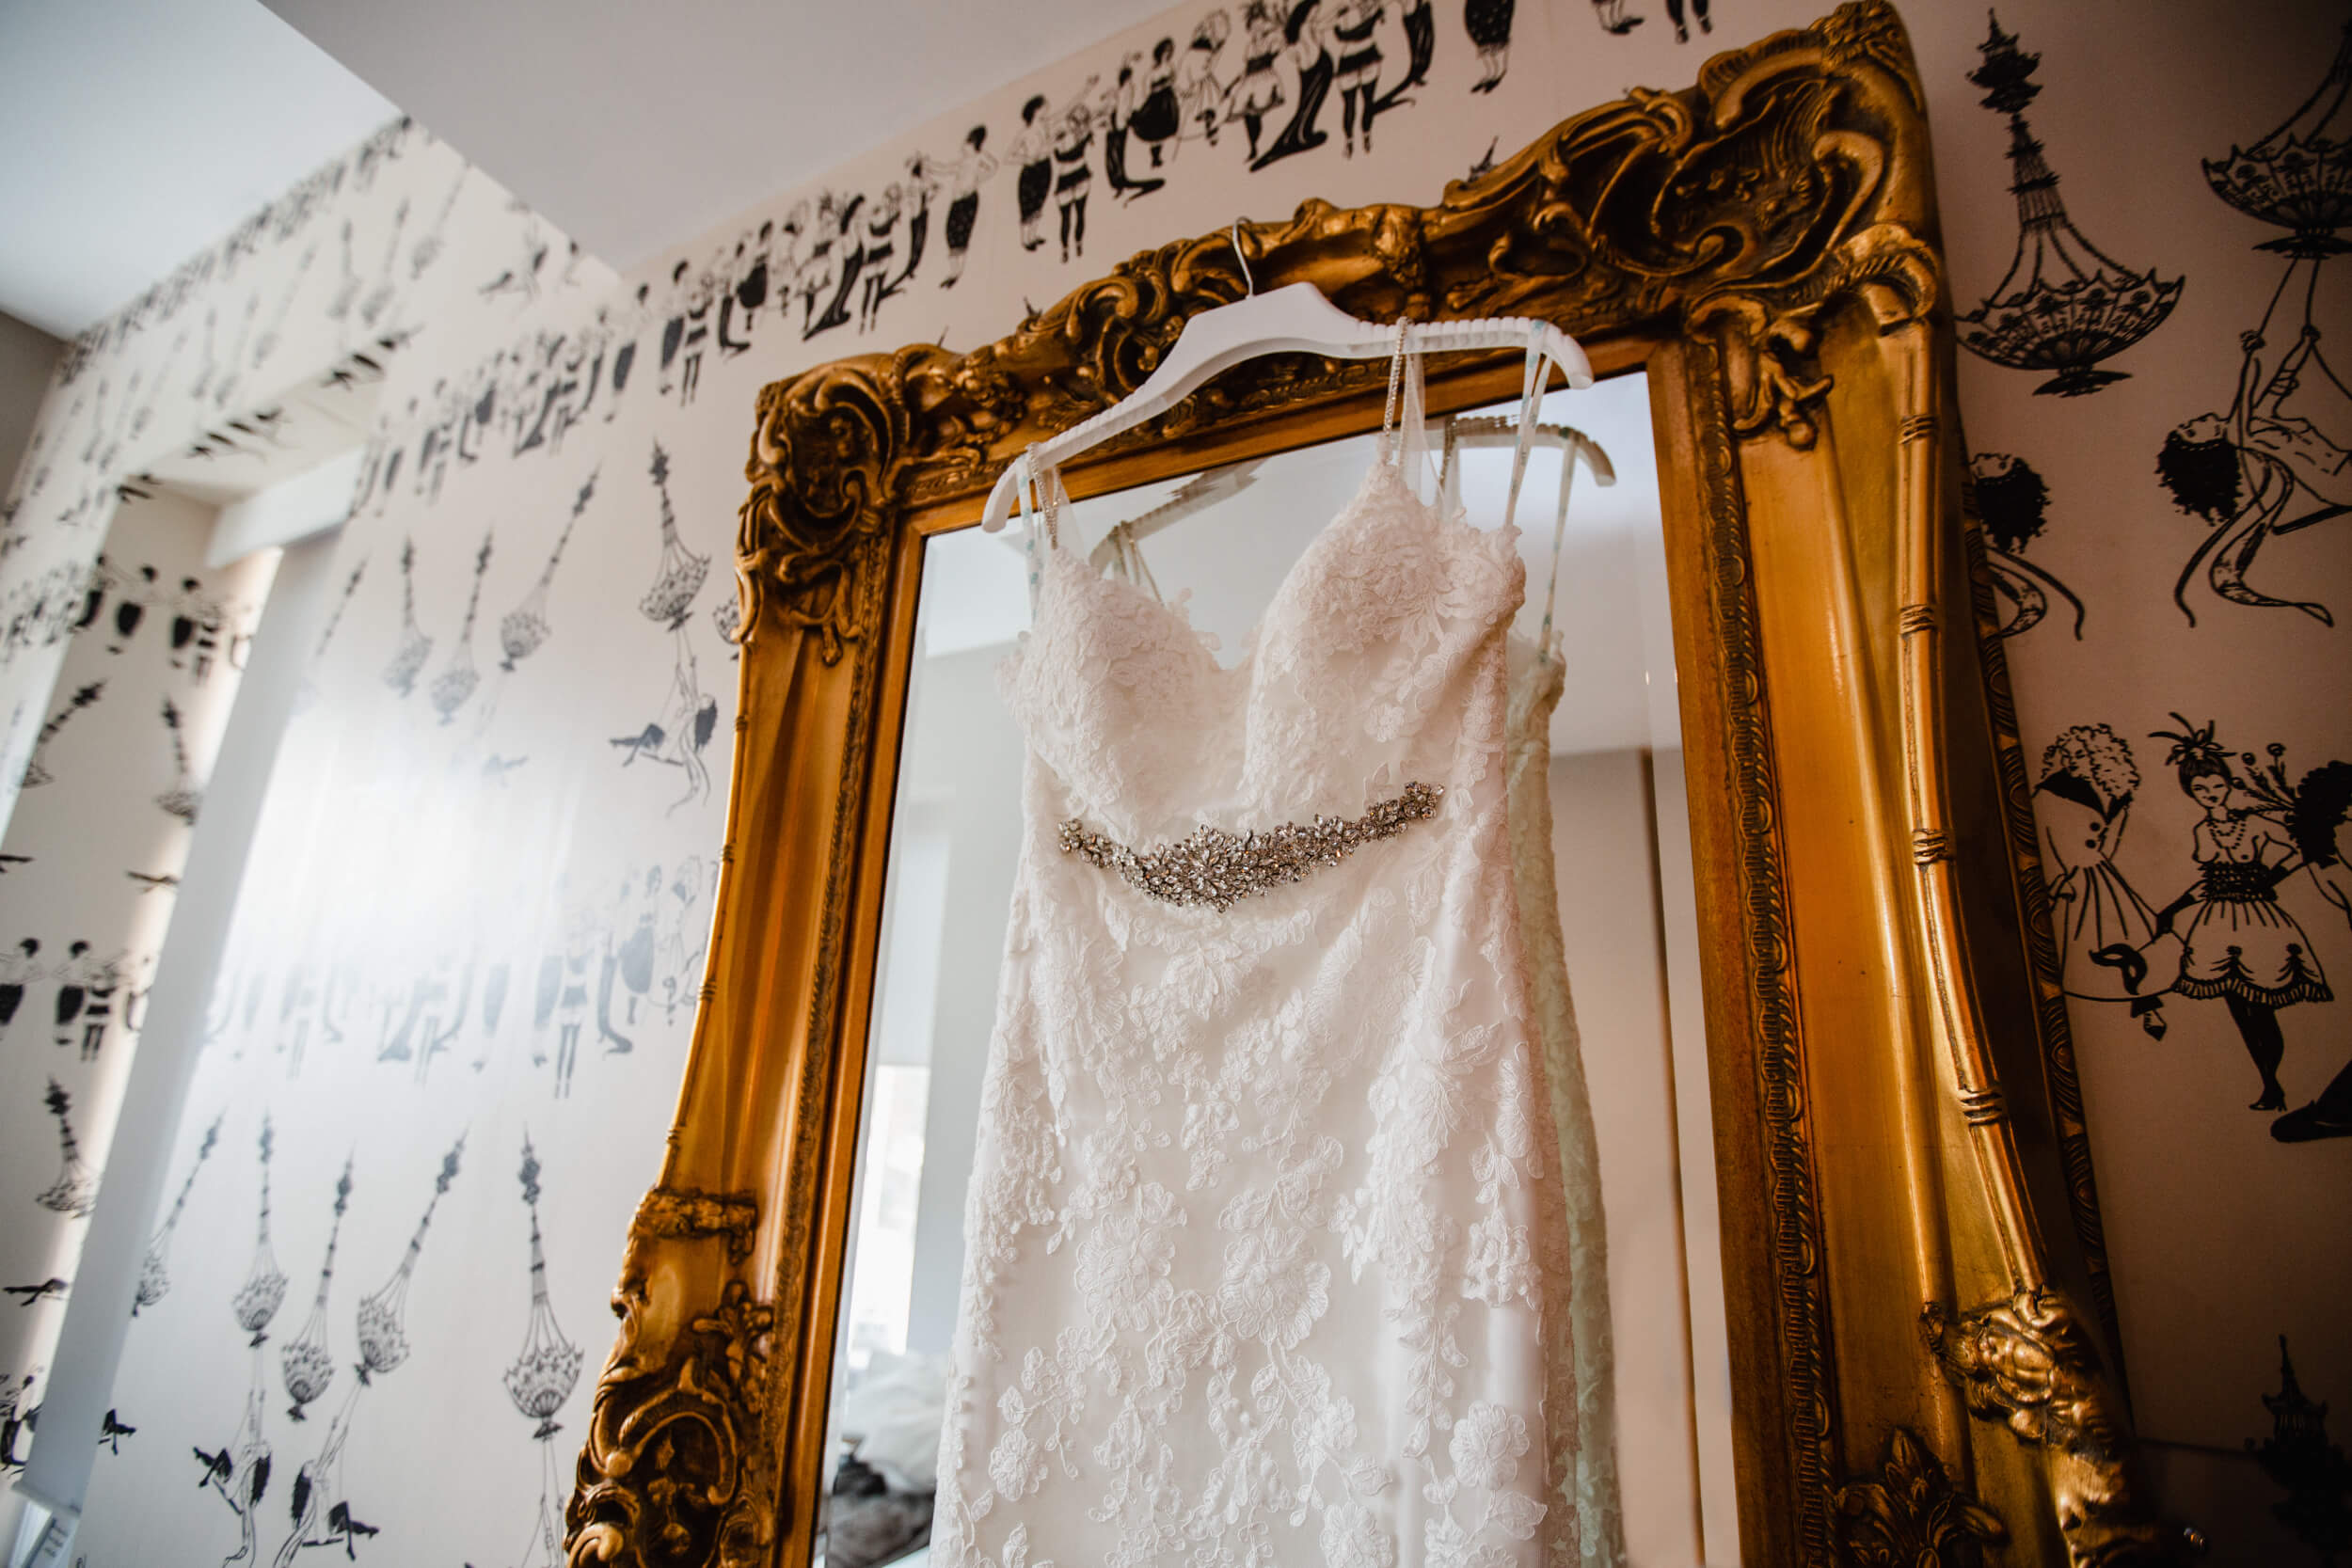 close up detail photograph of wedding dress hung on mirror